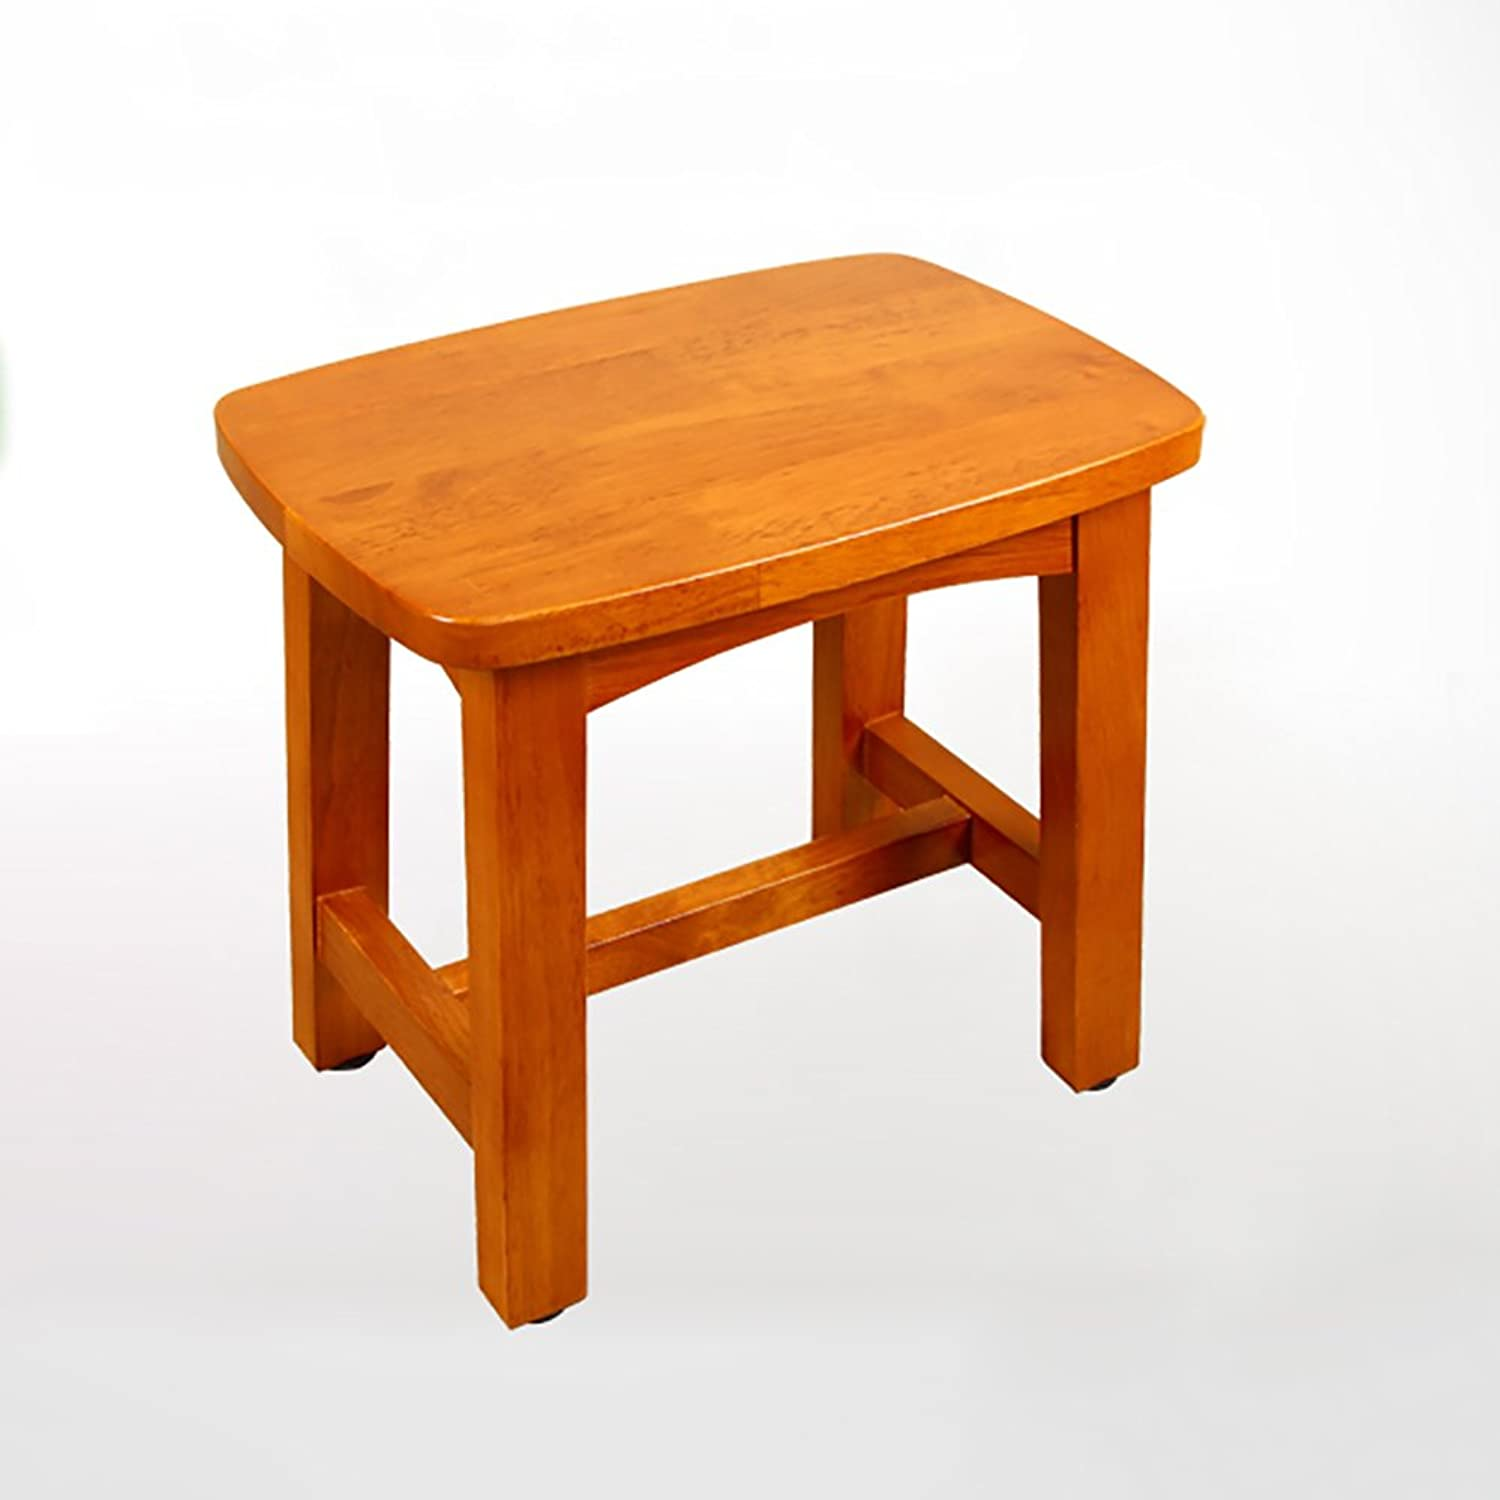 GWDJ Solid Wood Small Square Stool Shower Stool Anti-Corrosion Seat Bathroom Small Bench Doorway Change shoes Stool (30  30cm) Reinforced Footrest